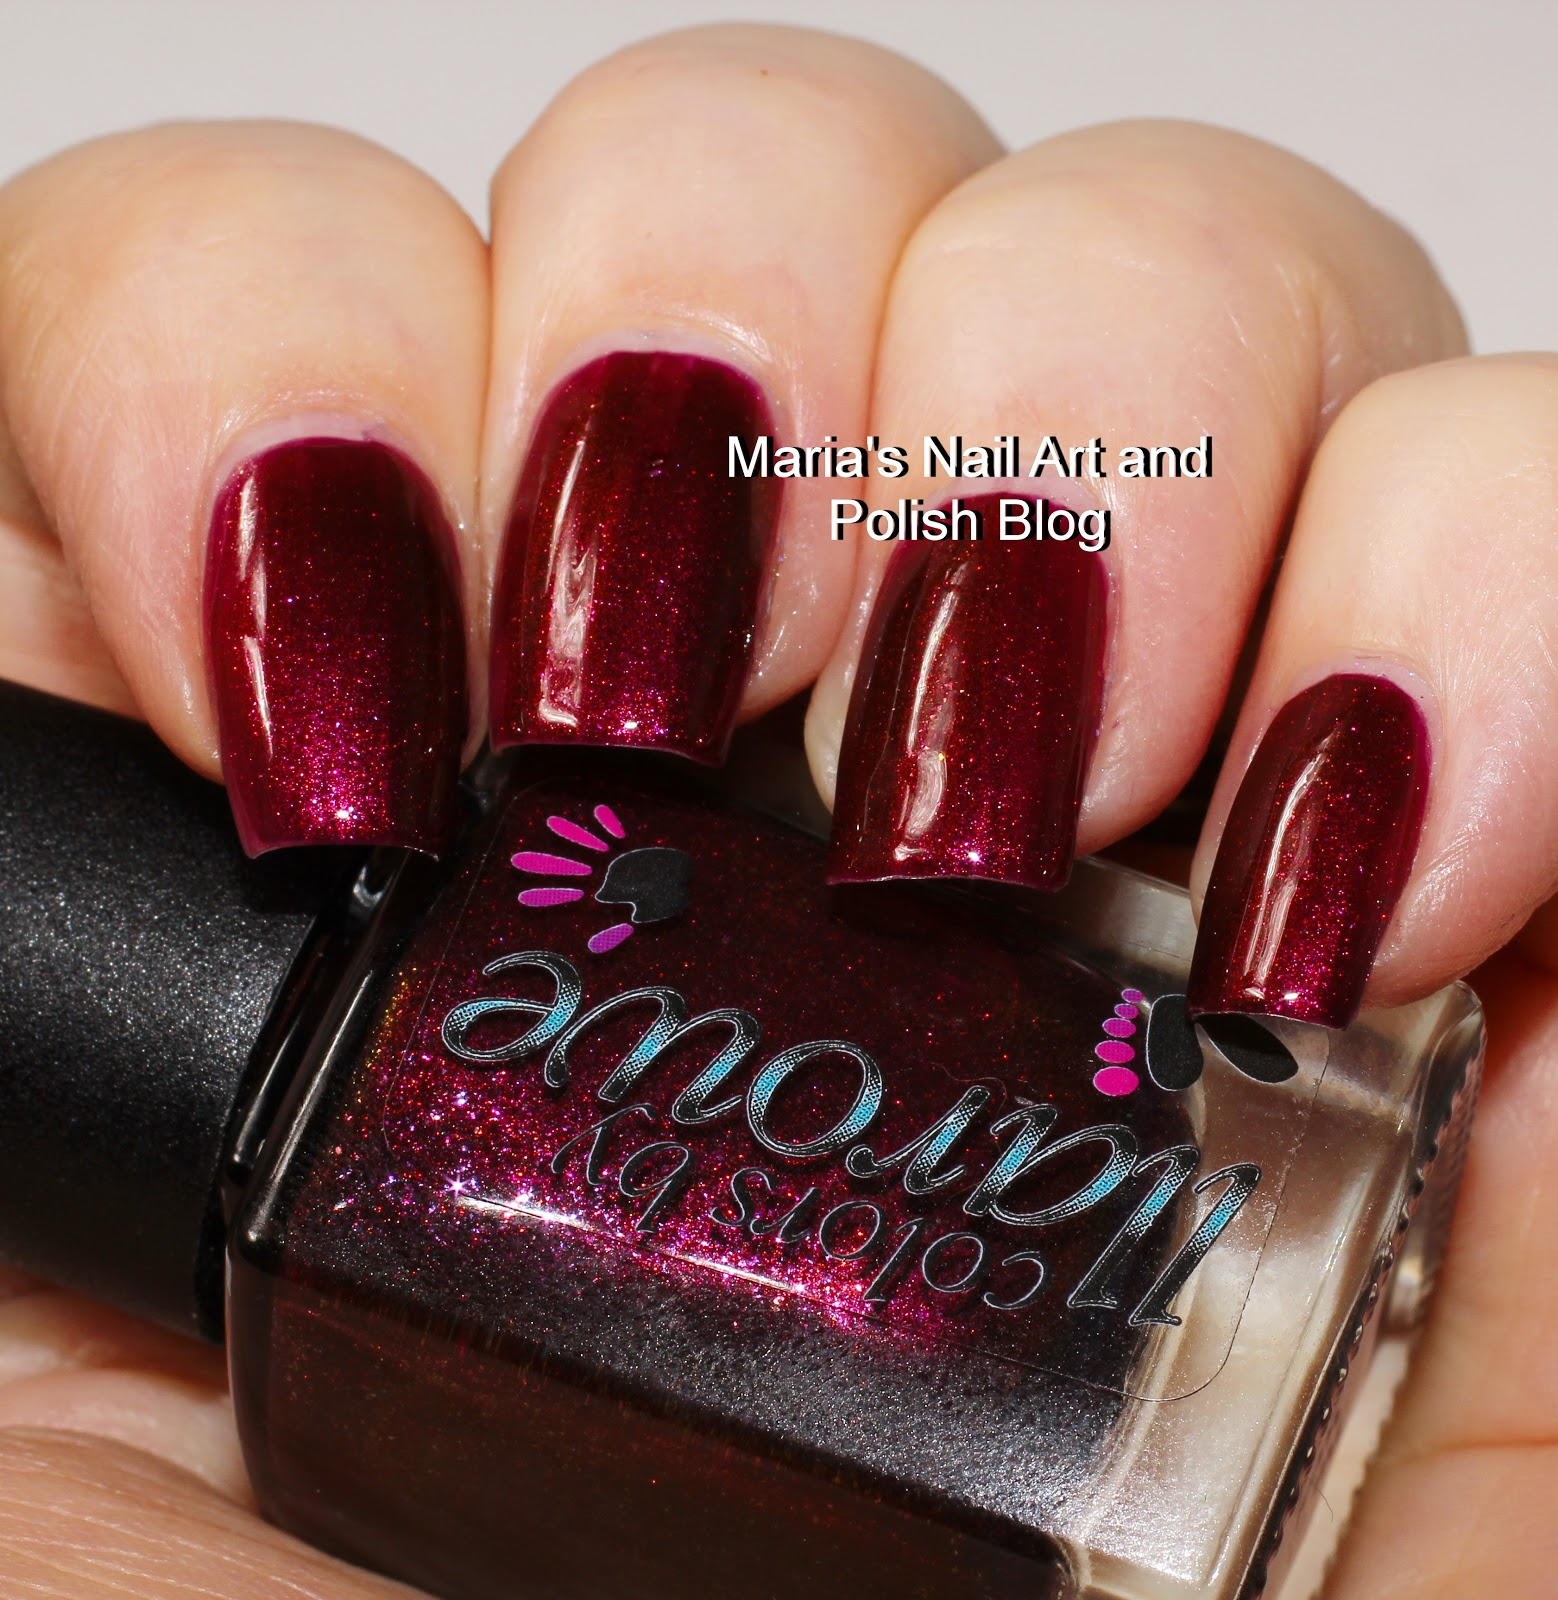 Marias nail art and polish blog colors by llarowe billy jean and colors by llarowe billy jean is a wine red crelly with intense golden red to green shimmer very vampy prinsesfo Gallery